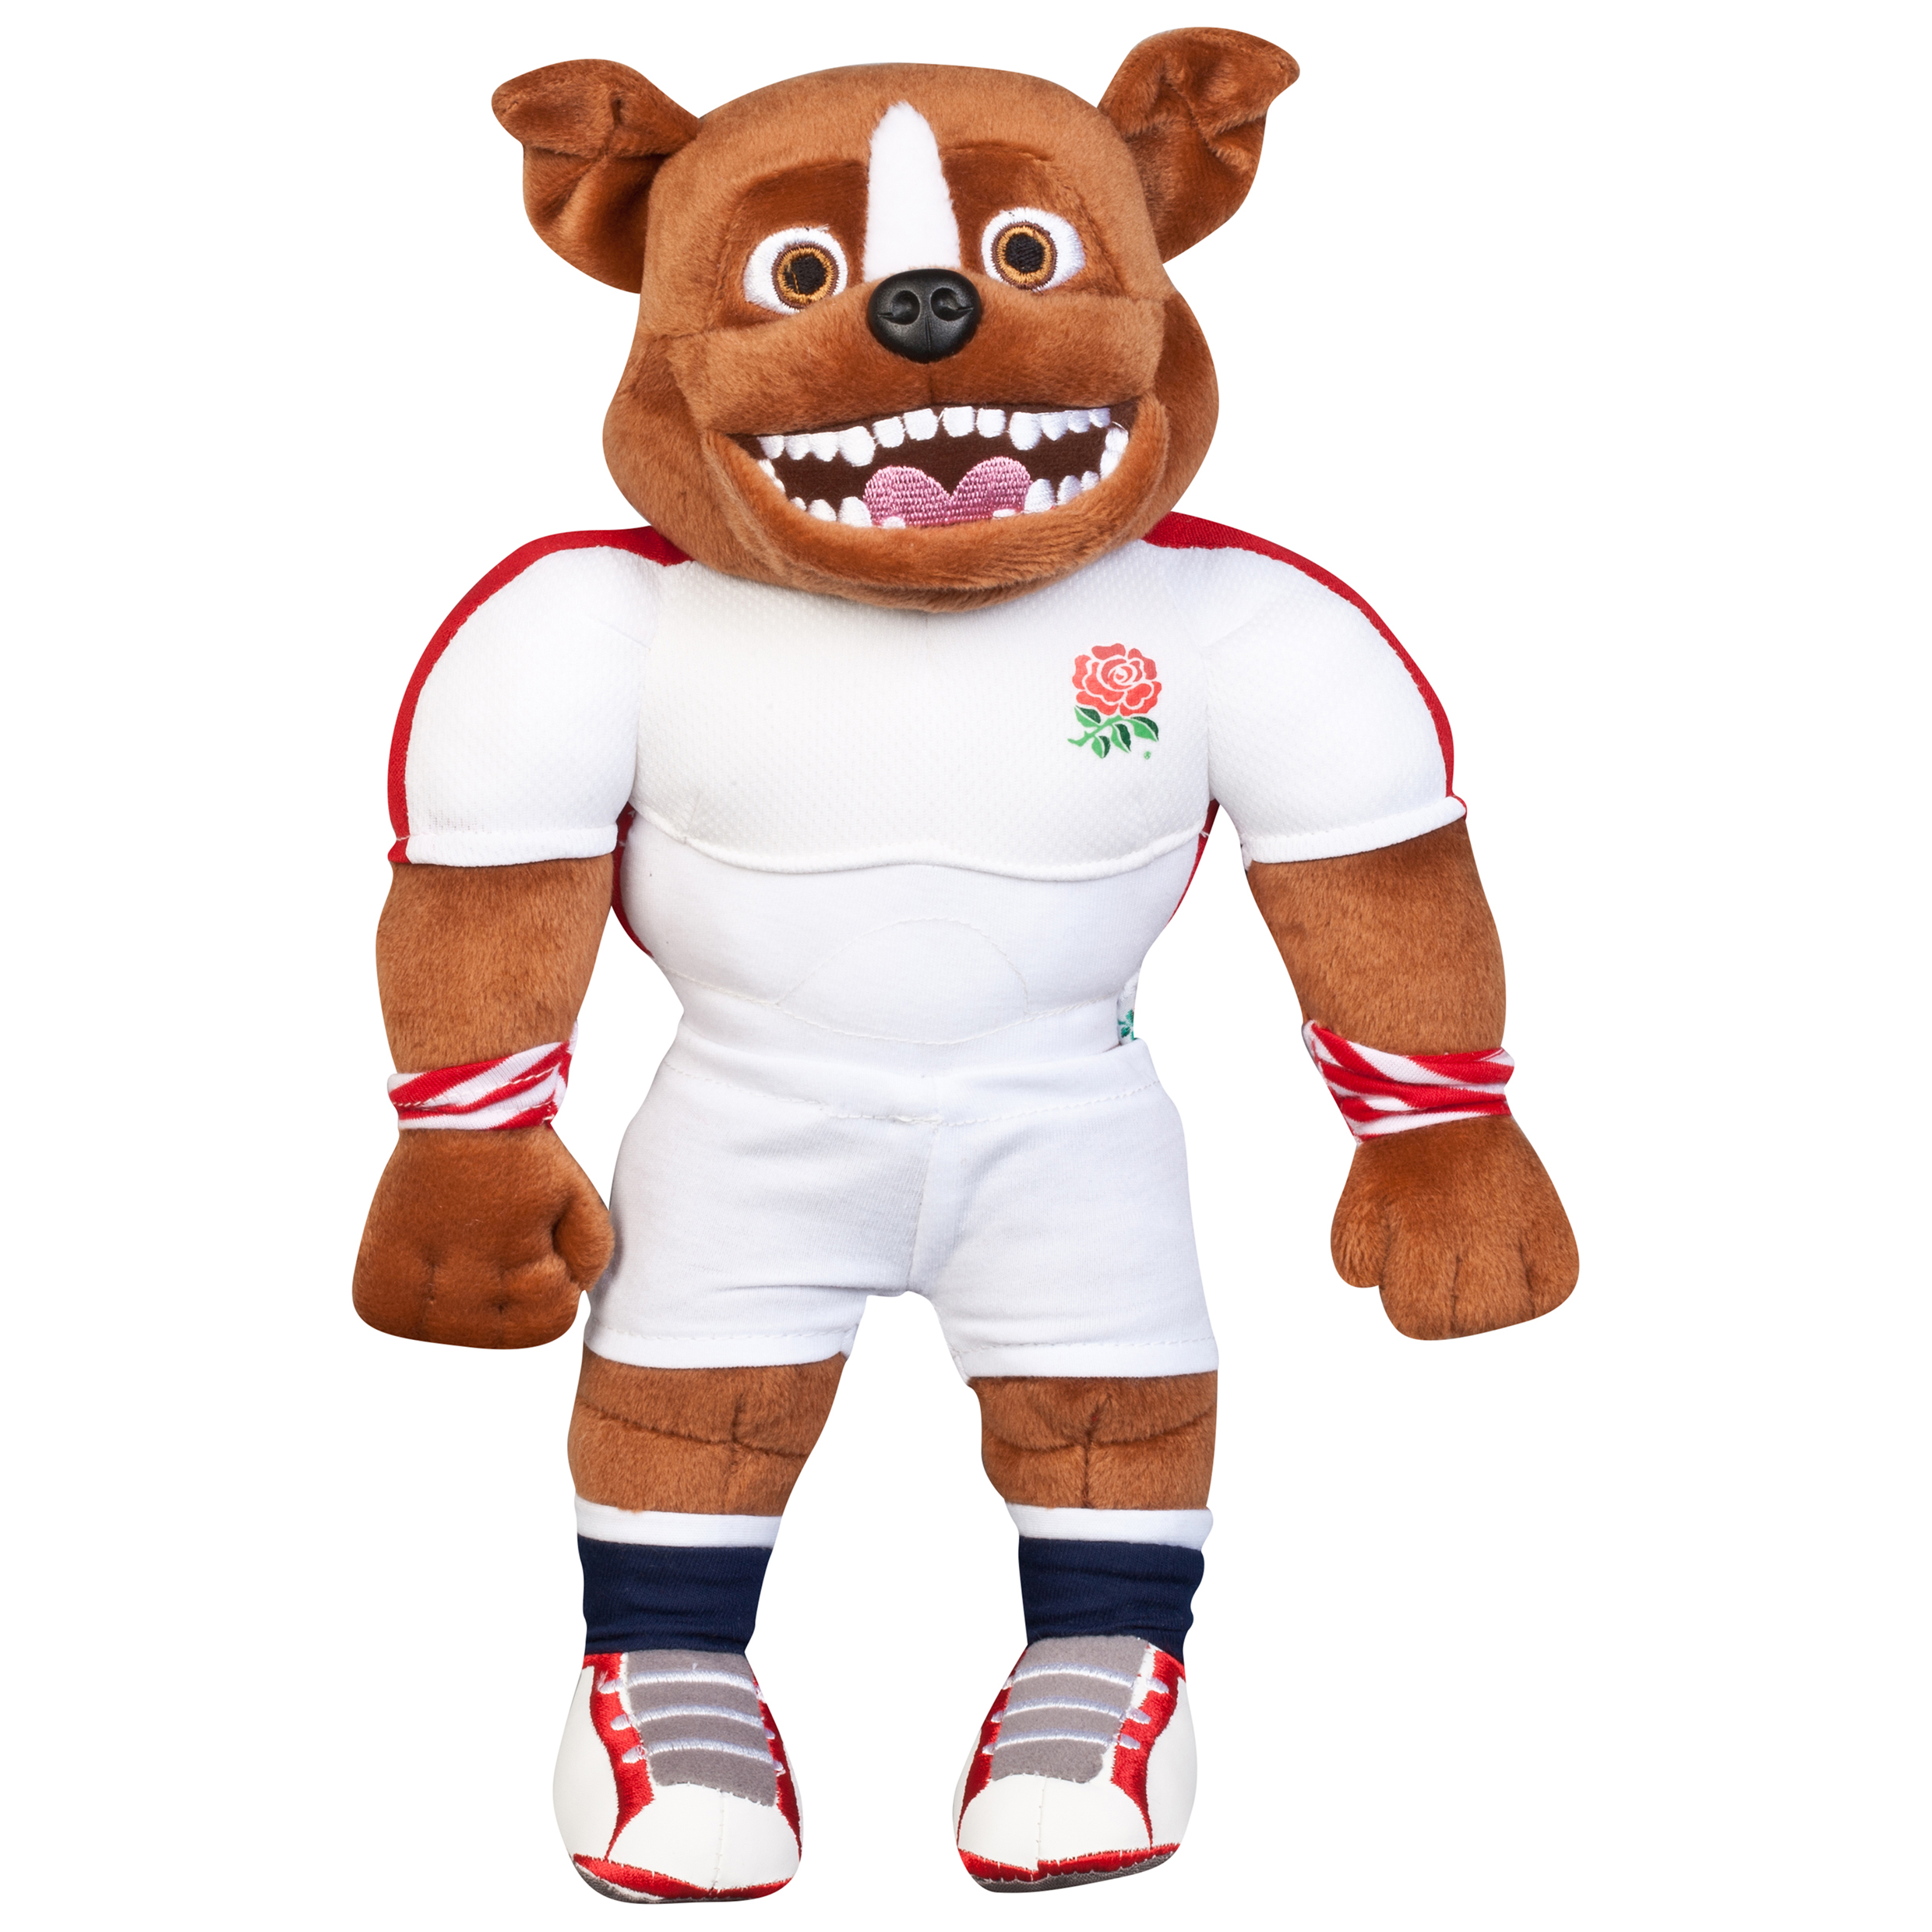 Image of England Ruckley Plush, N/A